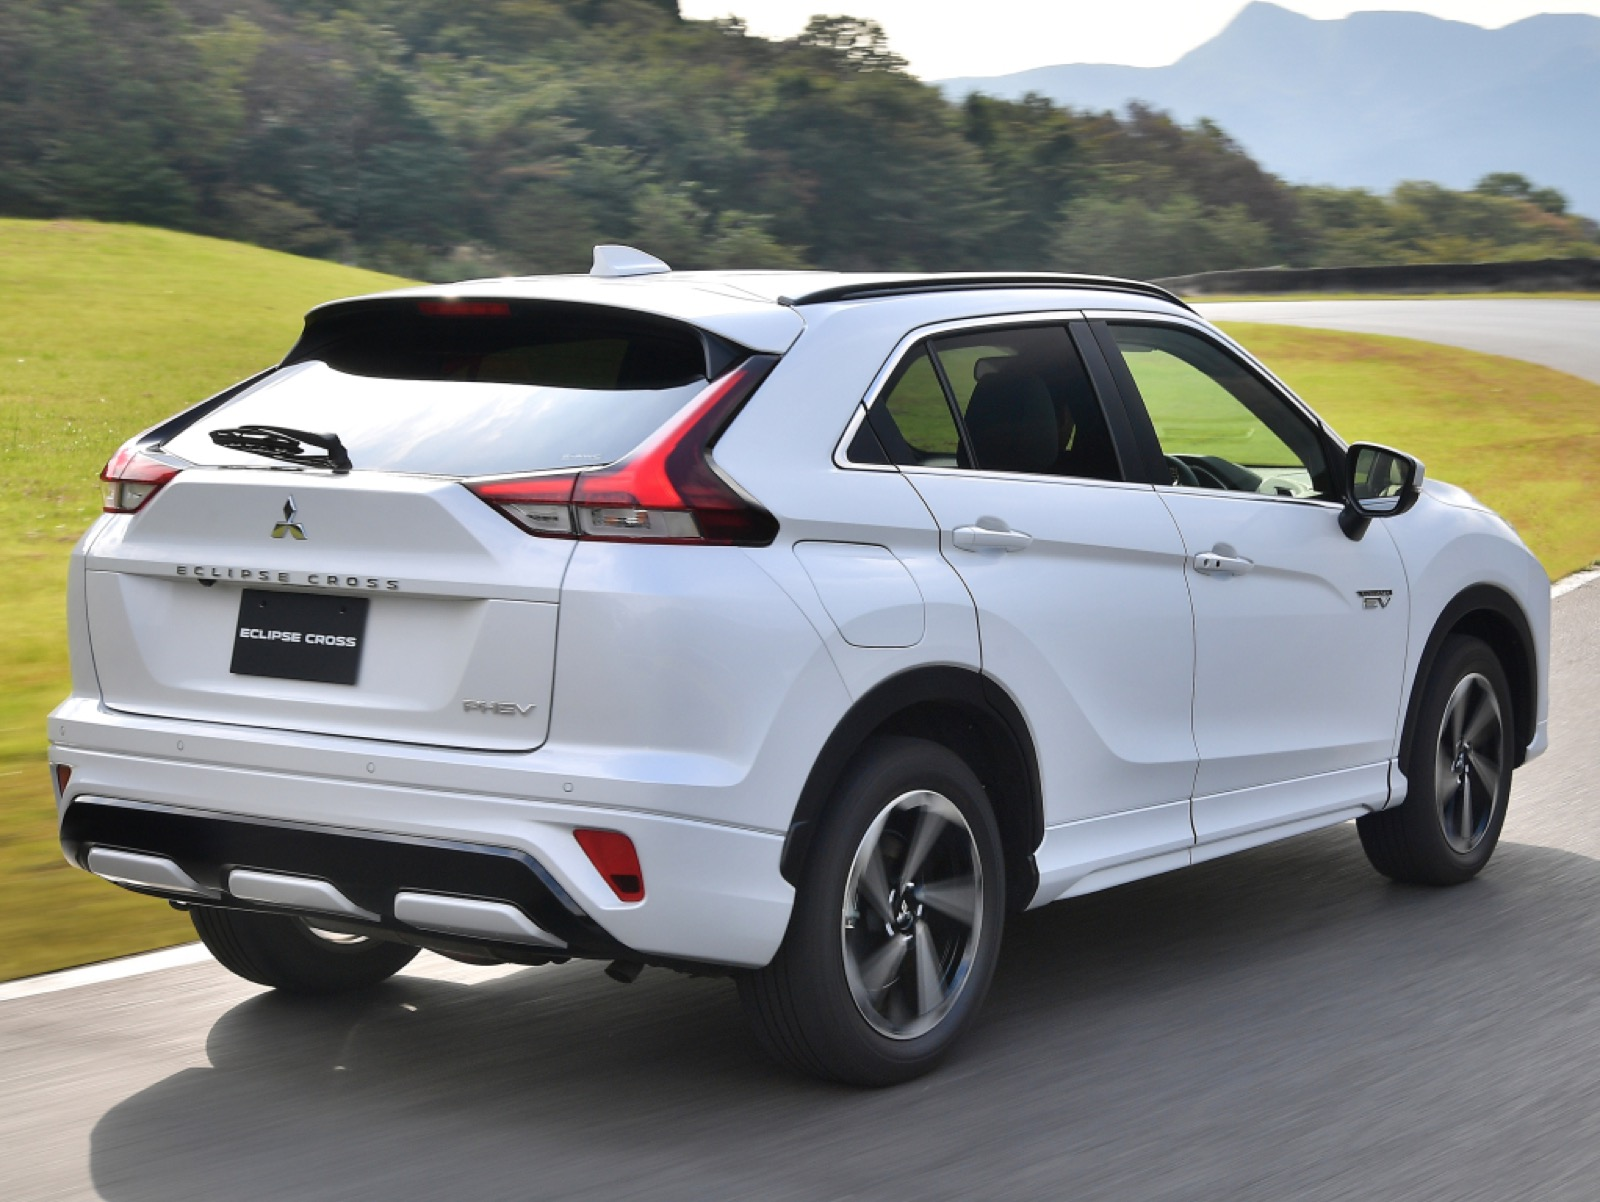 msubishi-eclipse-cross-phev-2020-1